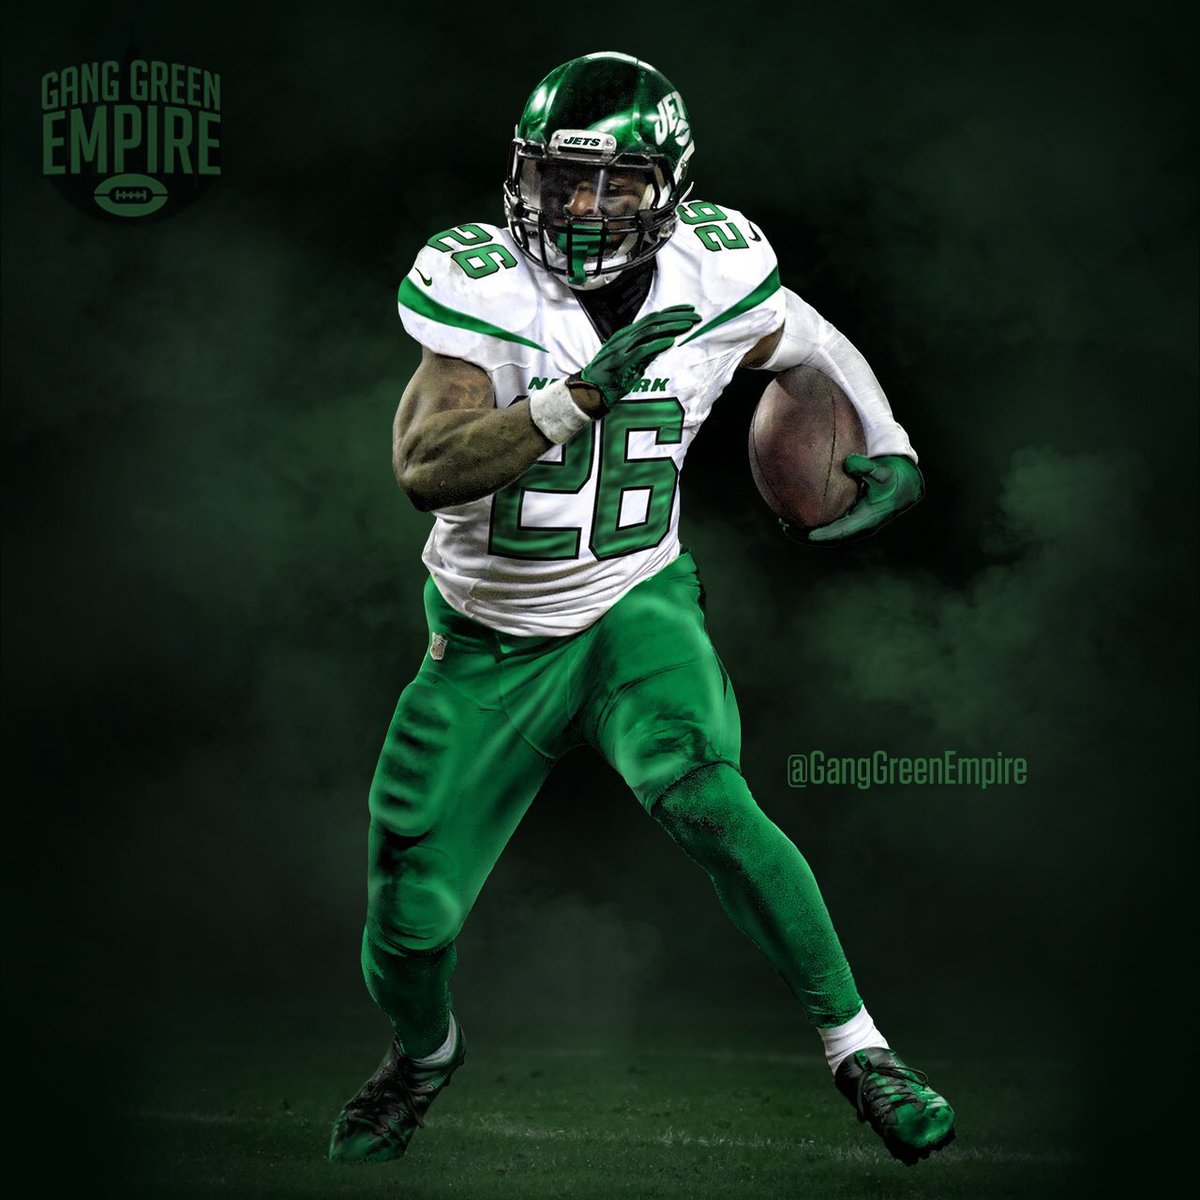 Of Leaked Look The Ustadium Would What … Like In Twitter jets